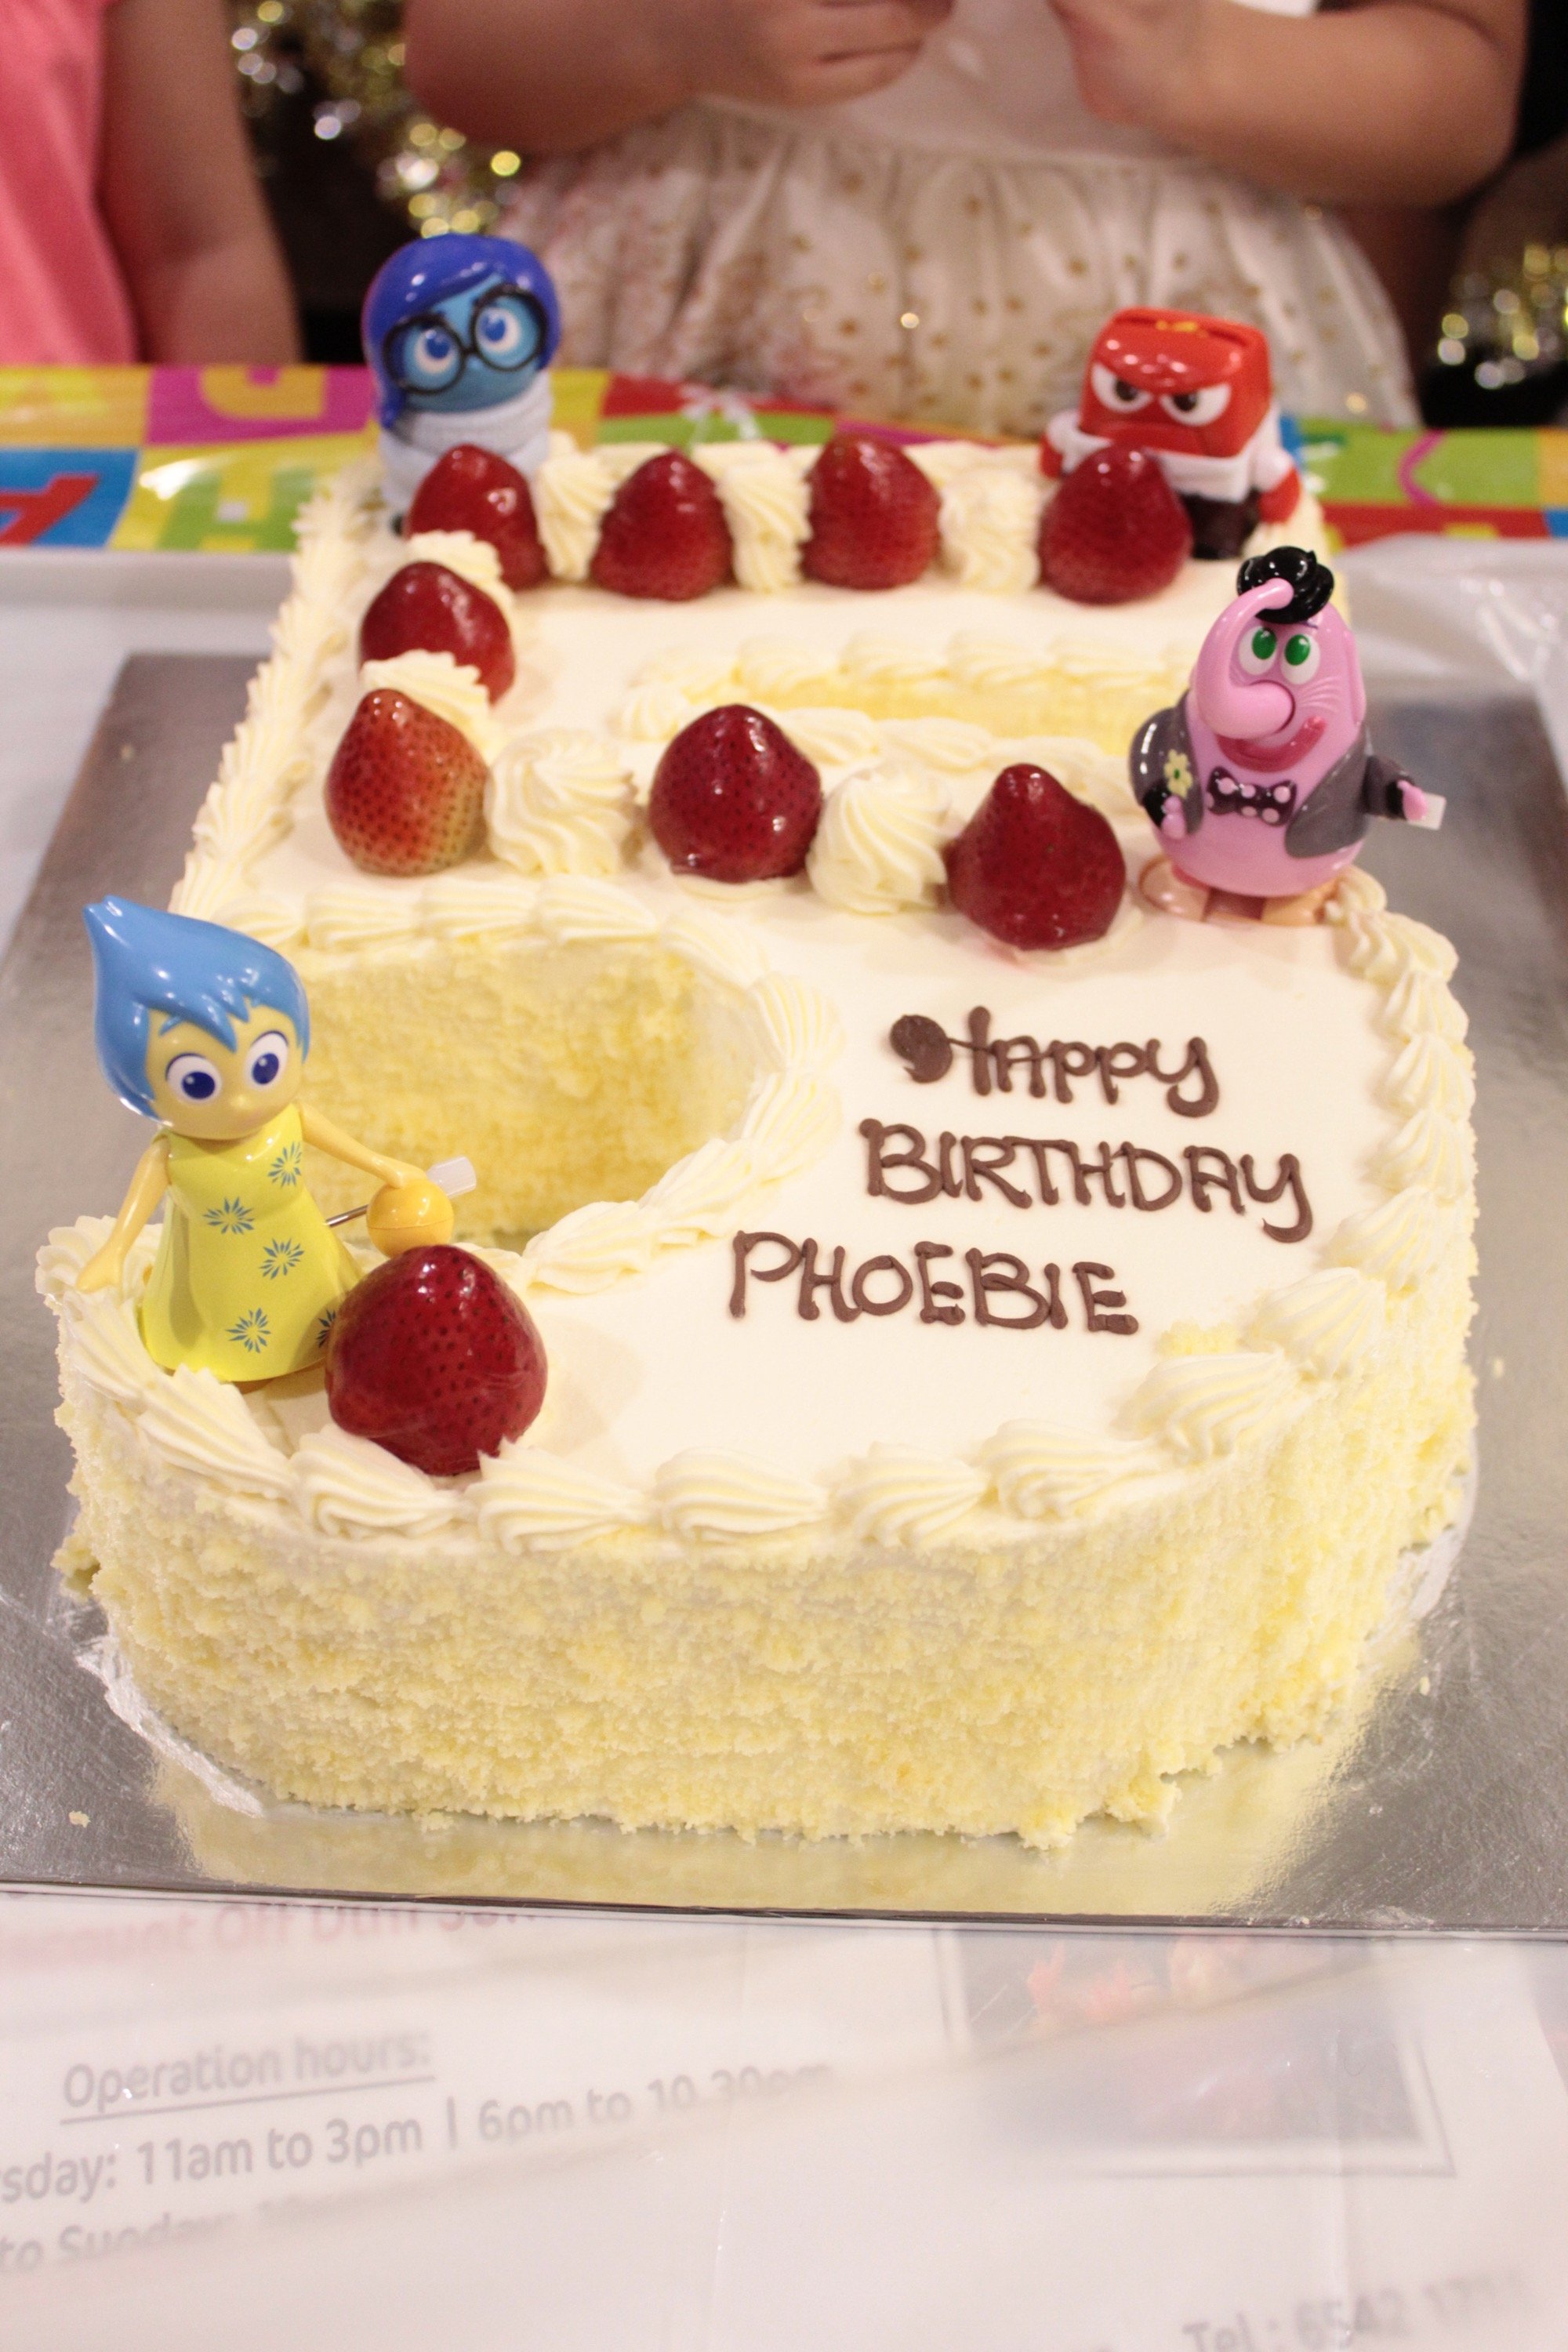 Prime Phoebies 5Th Birthday The Cake Mummy Priscilla Funny Birthday Cards Online Alyptdamsfinfo